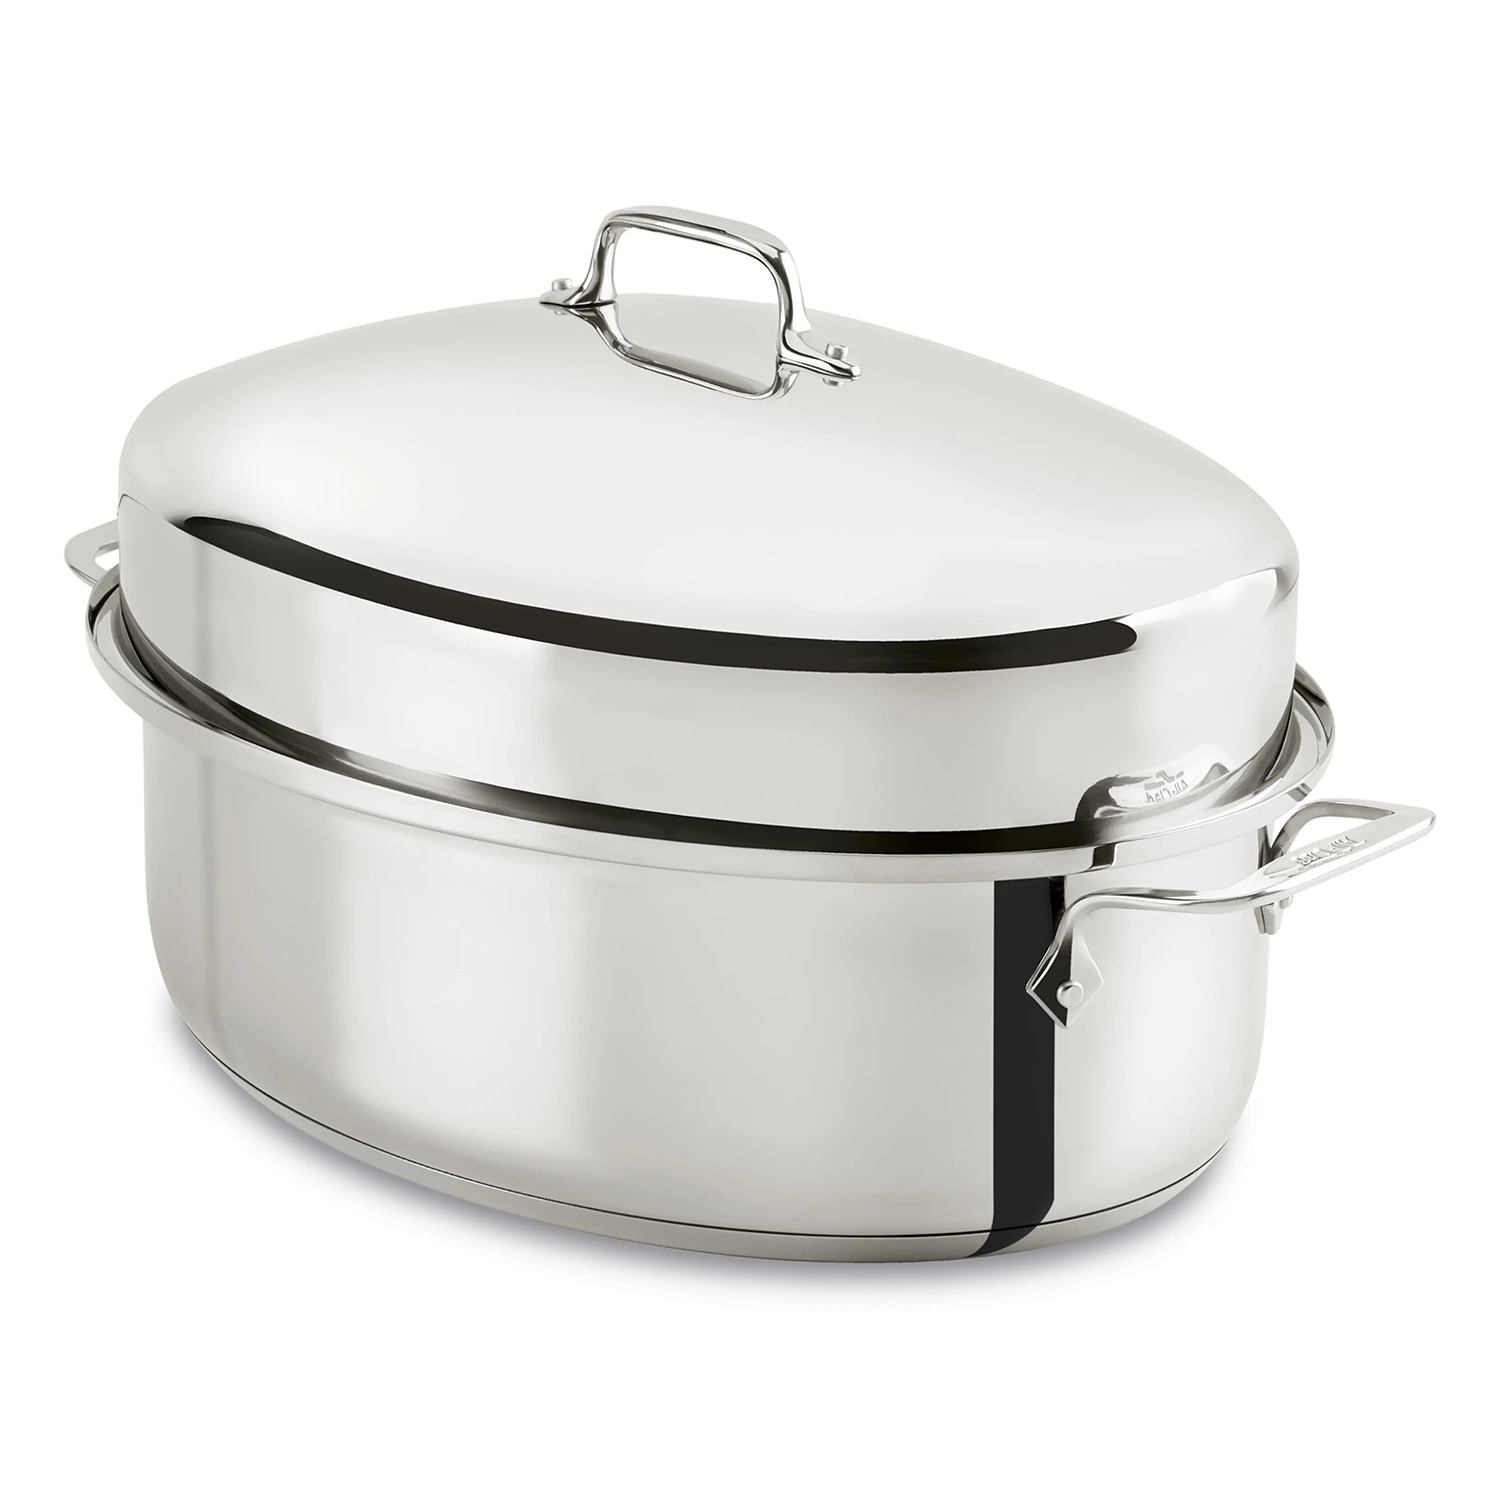 10-Quart Covered Oval Roaster & Lid ALL-CLAD